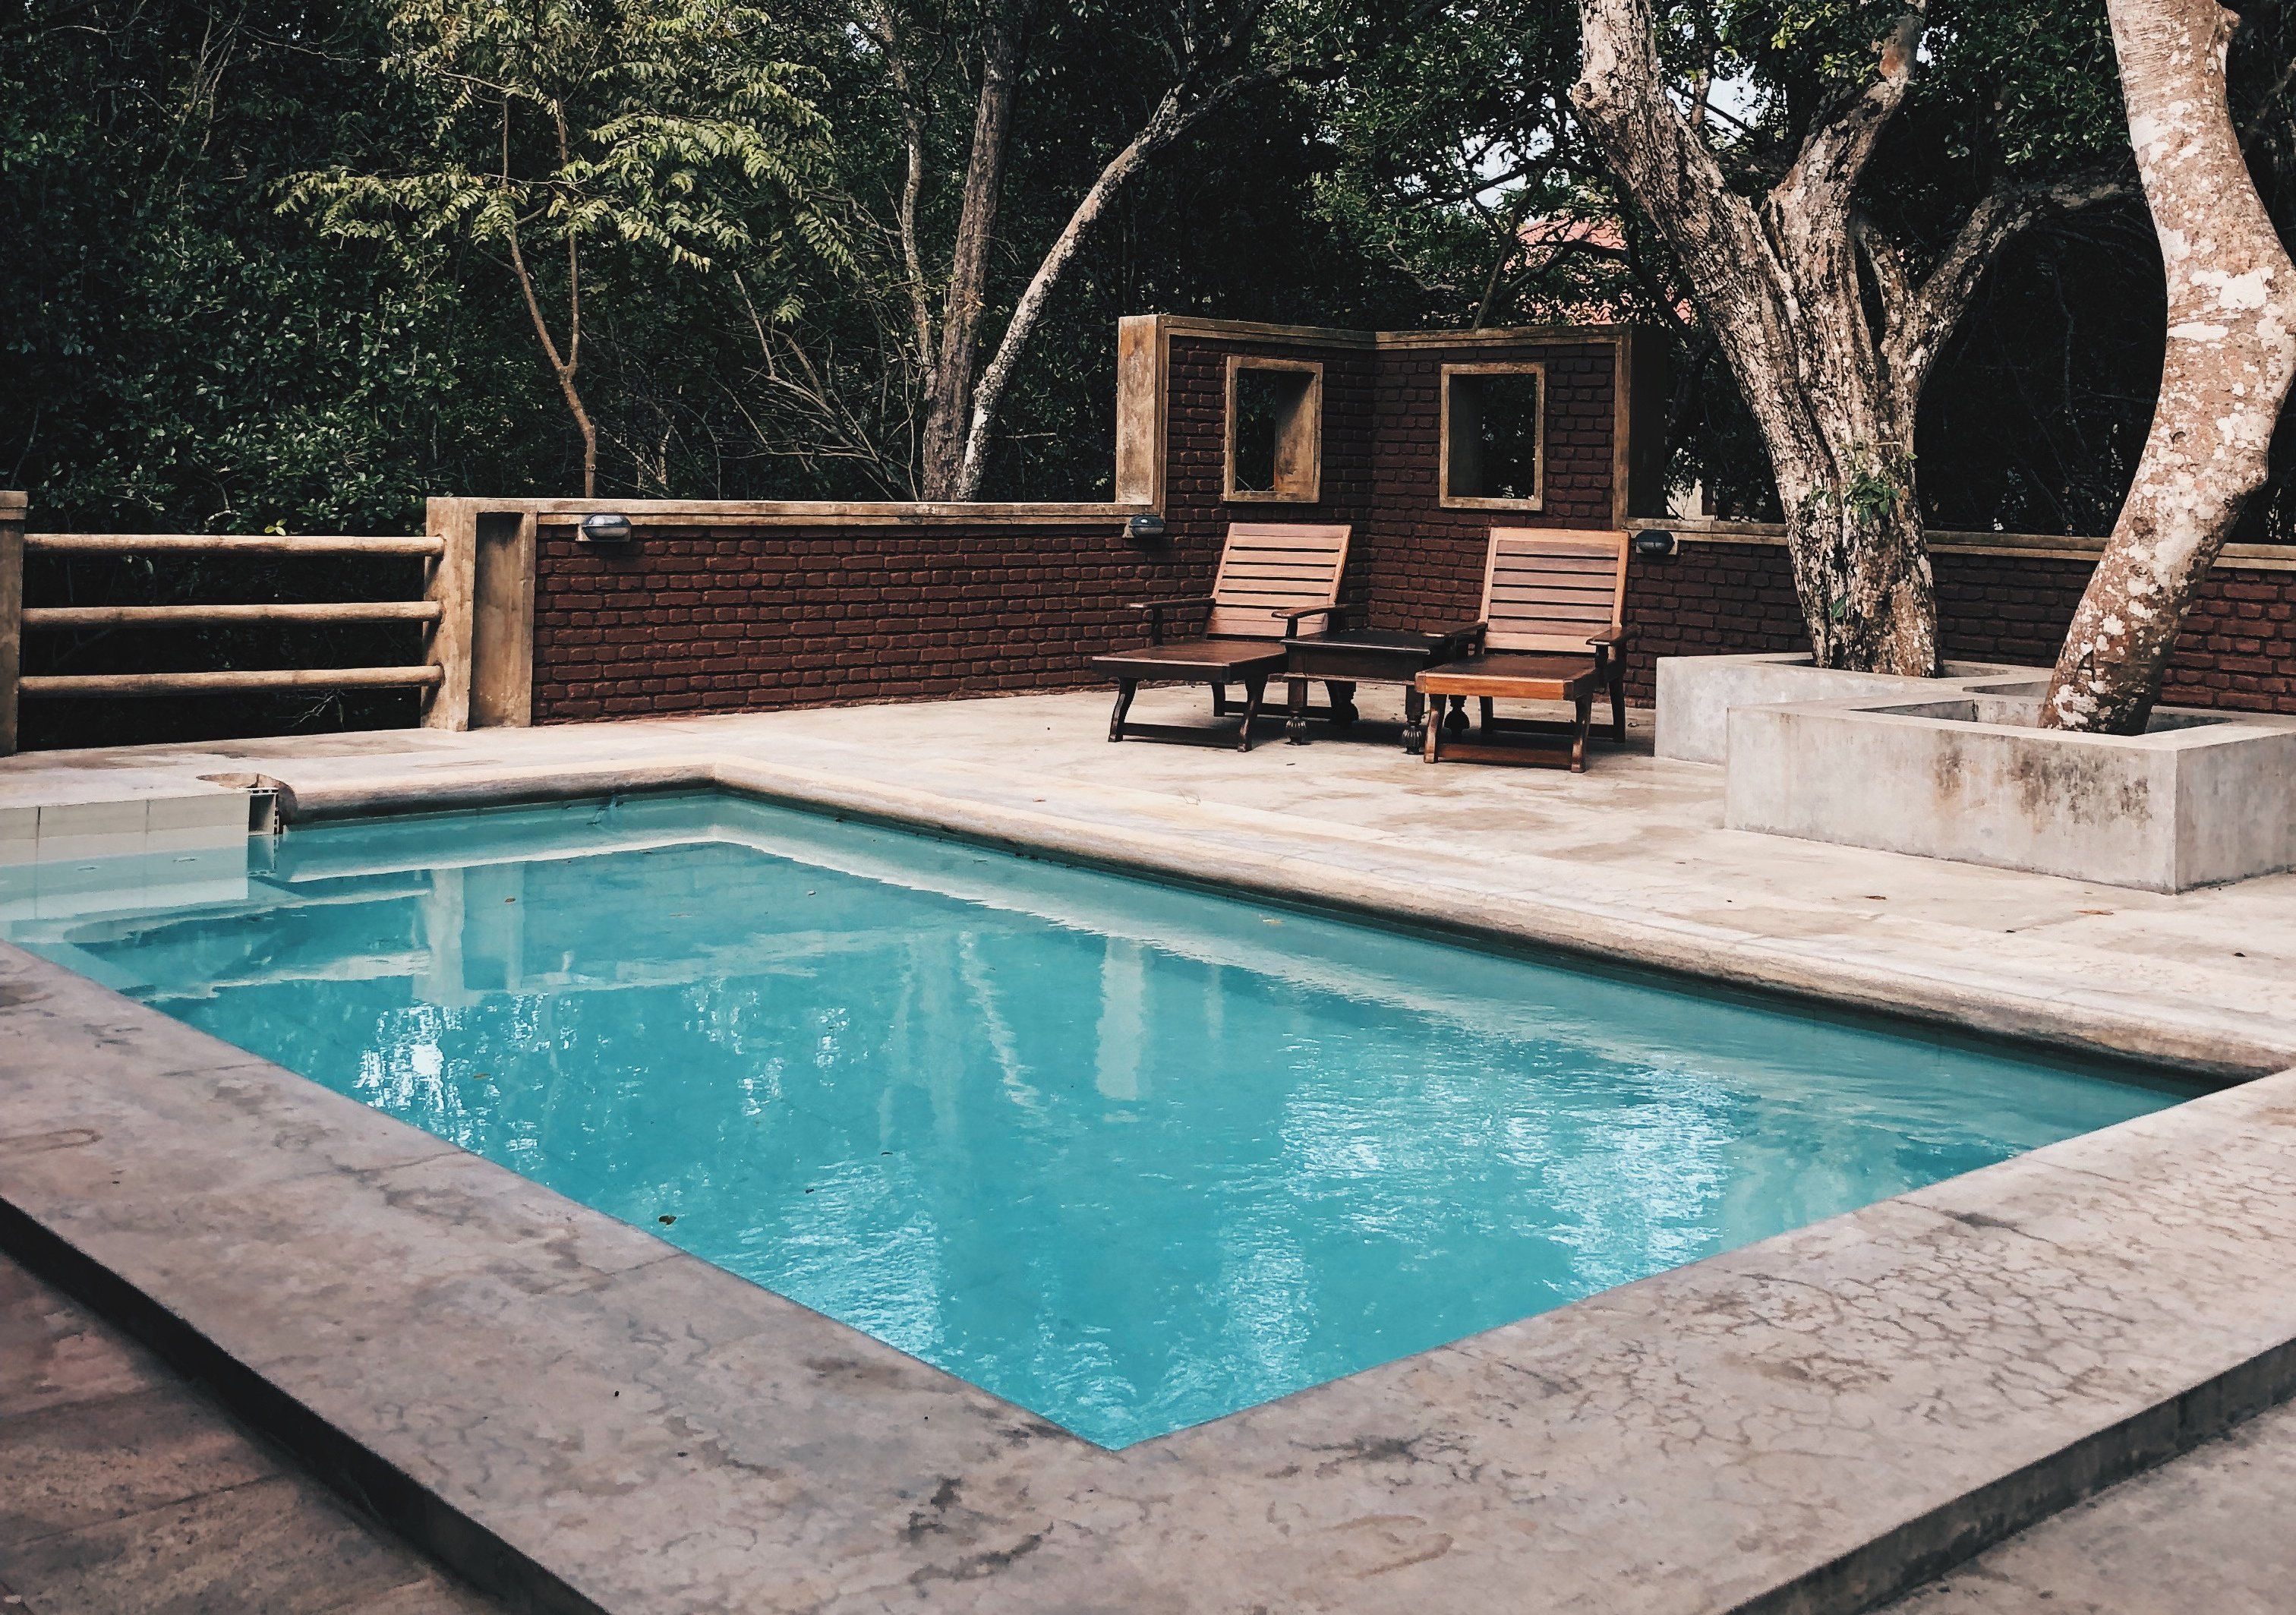 Compact pool - cocktail pool ideas, cost, design, dimensions, and more